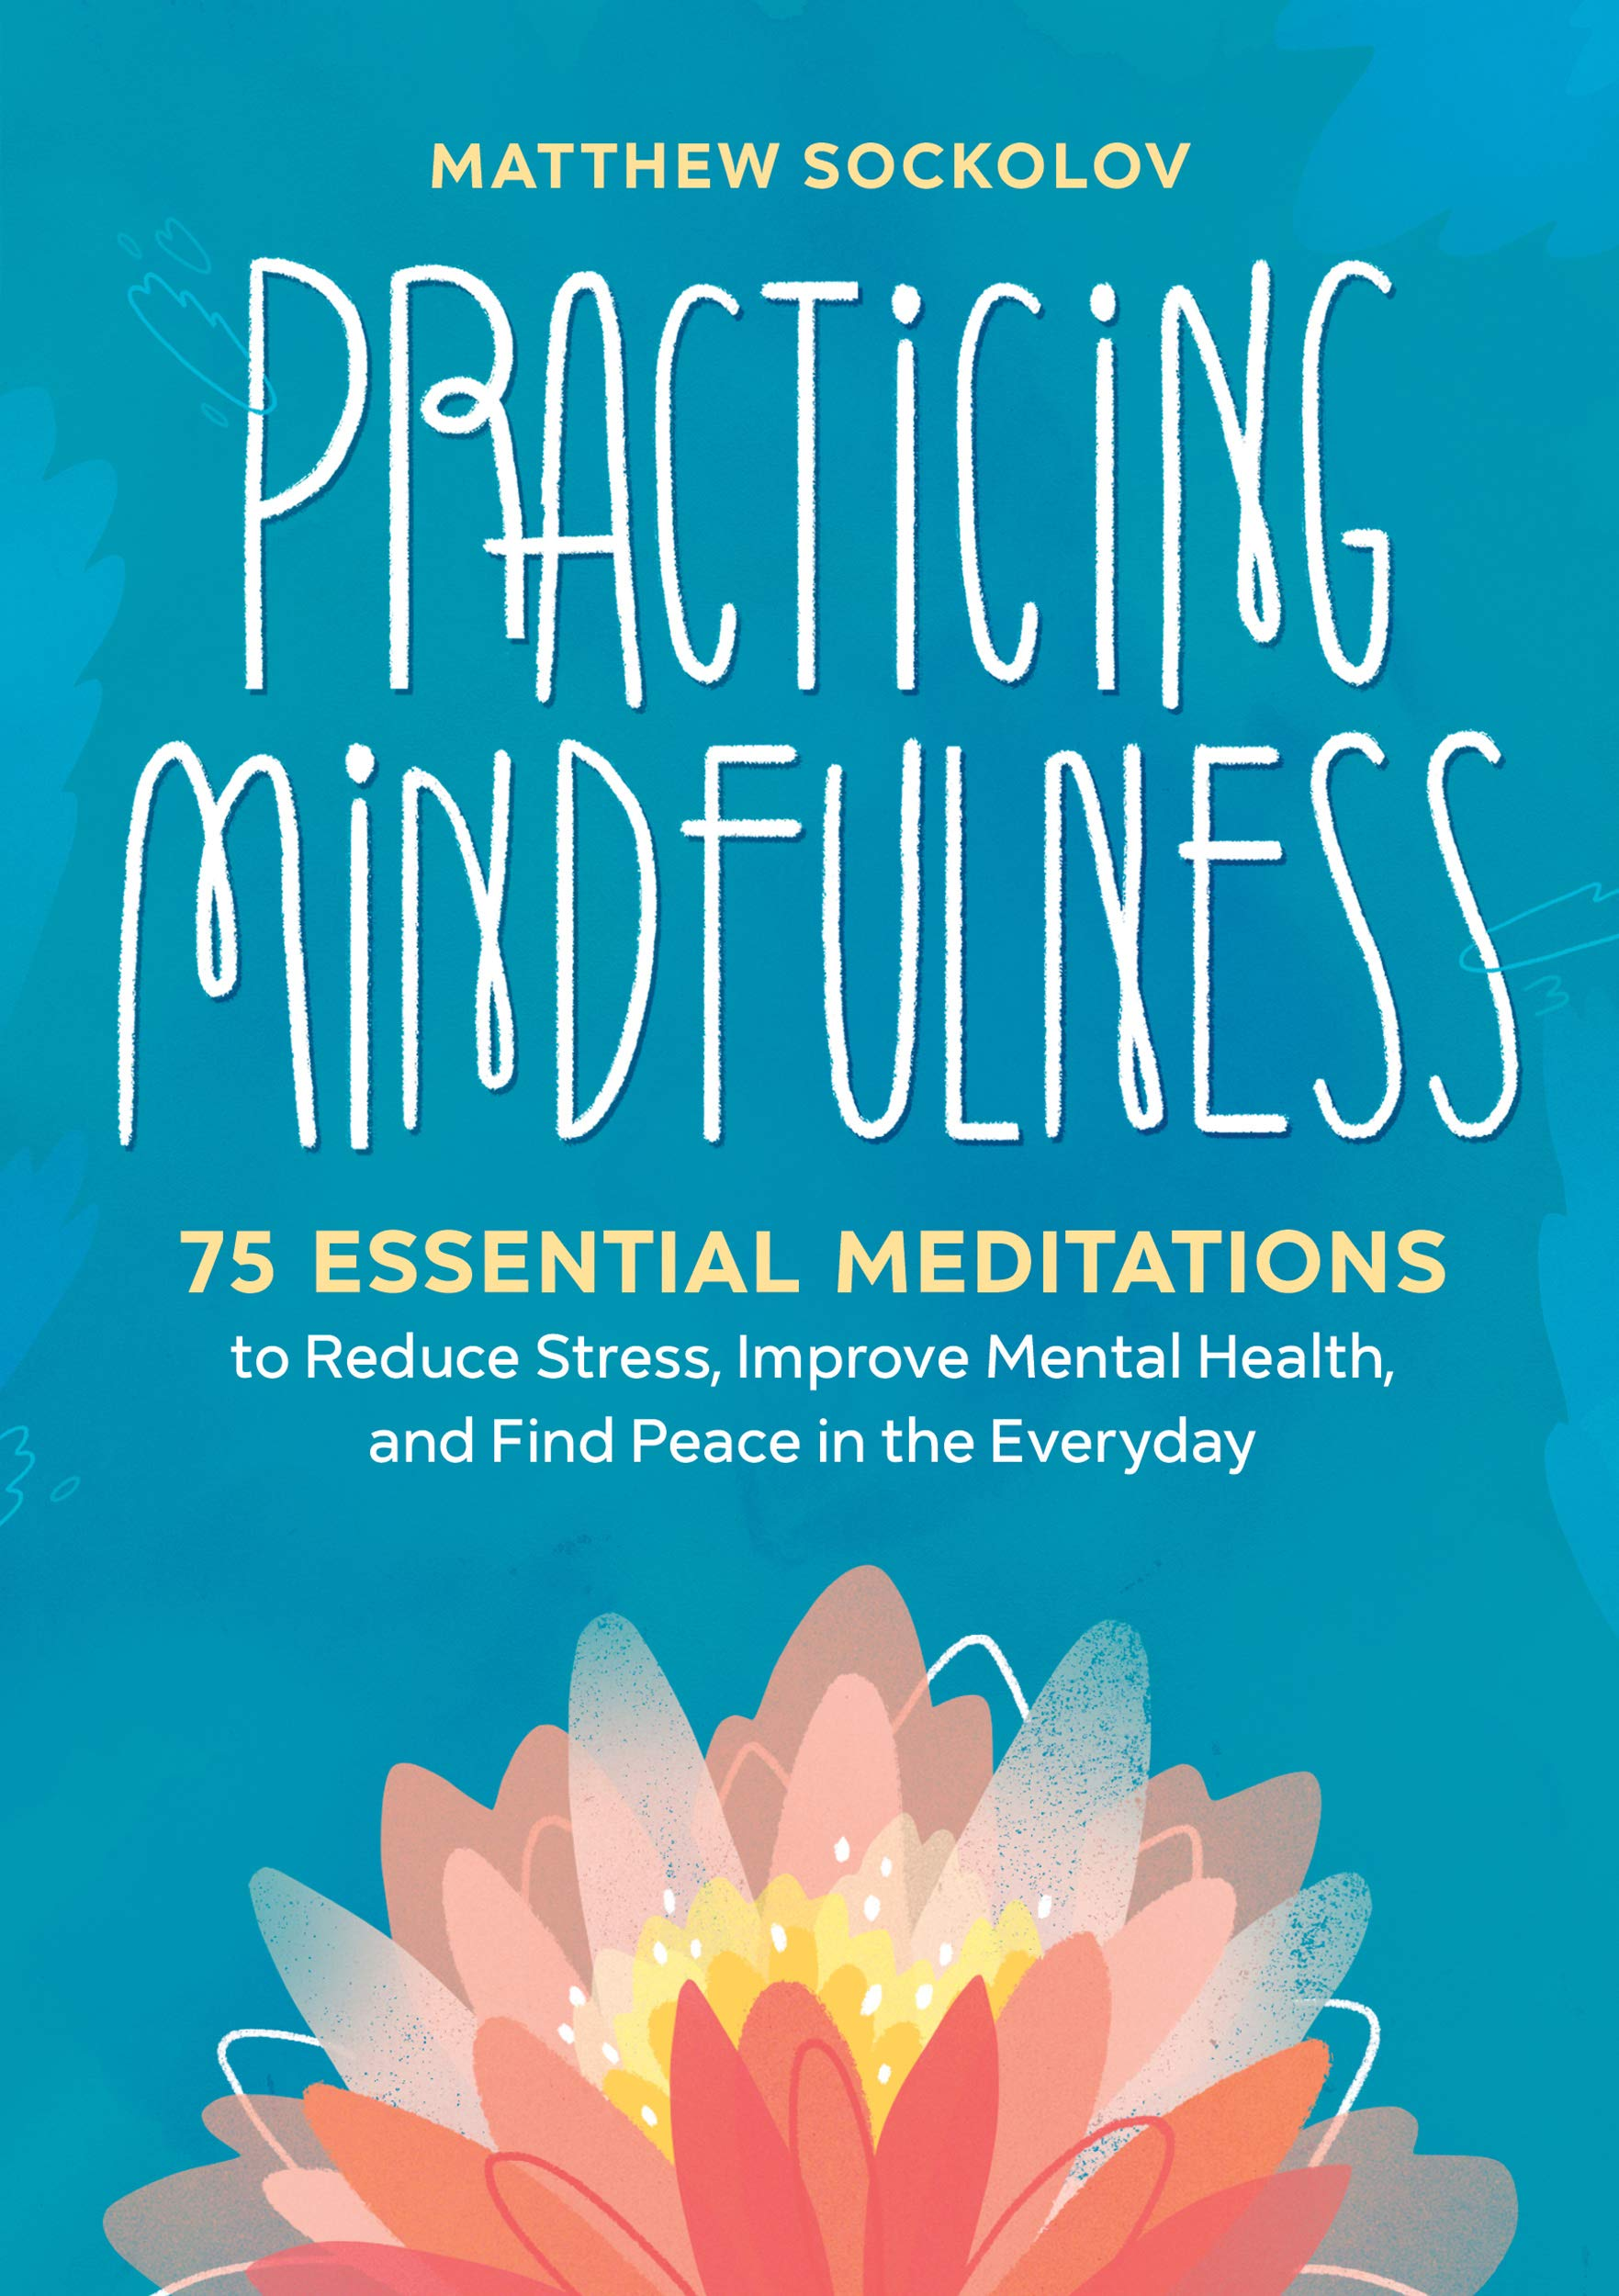 Practicing Mindfulness Essential Meditations Everyday product image